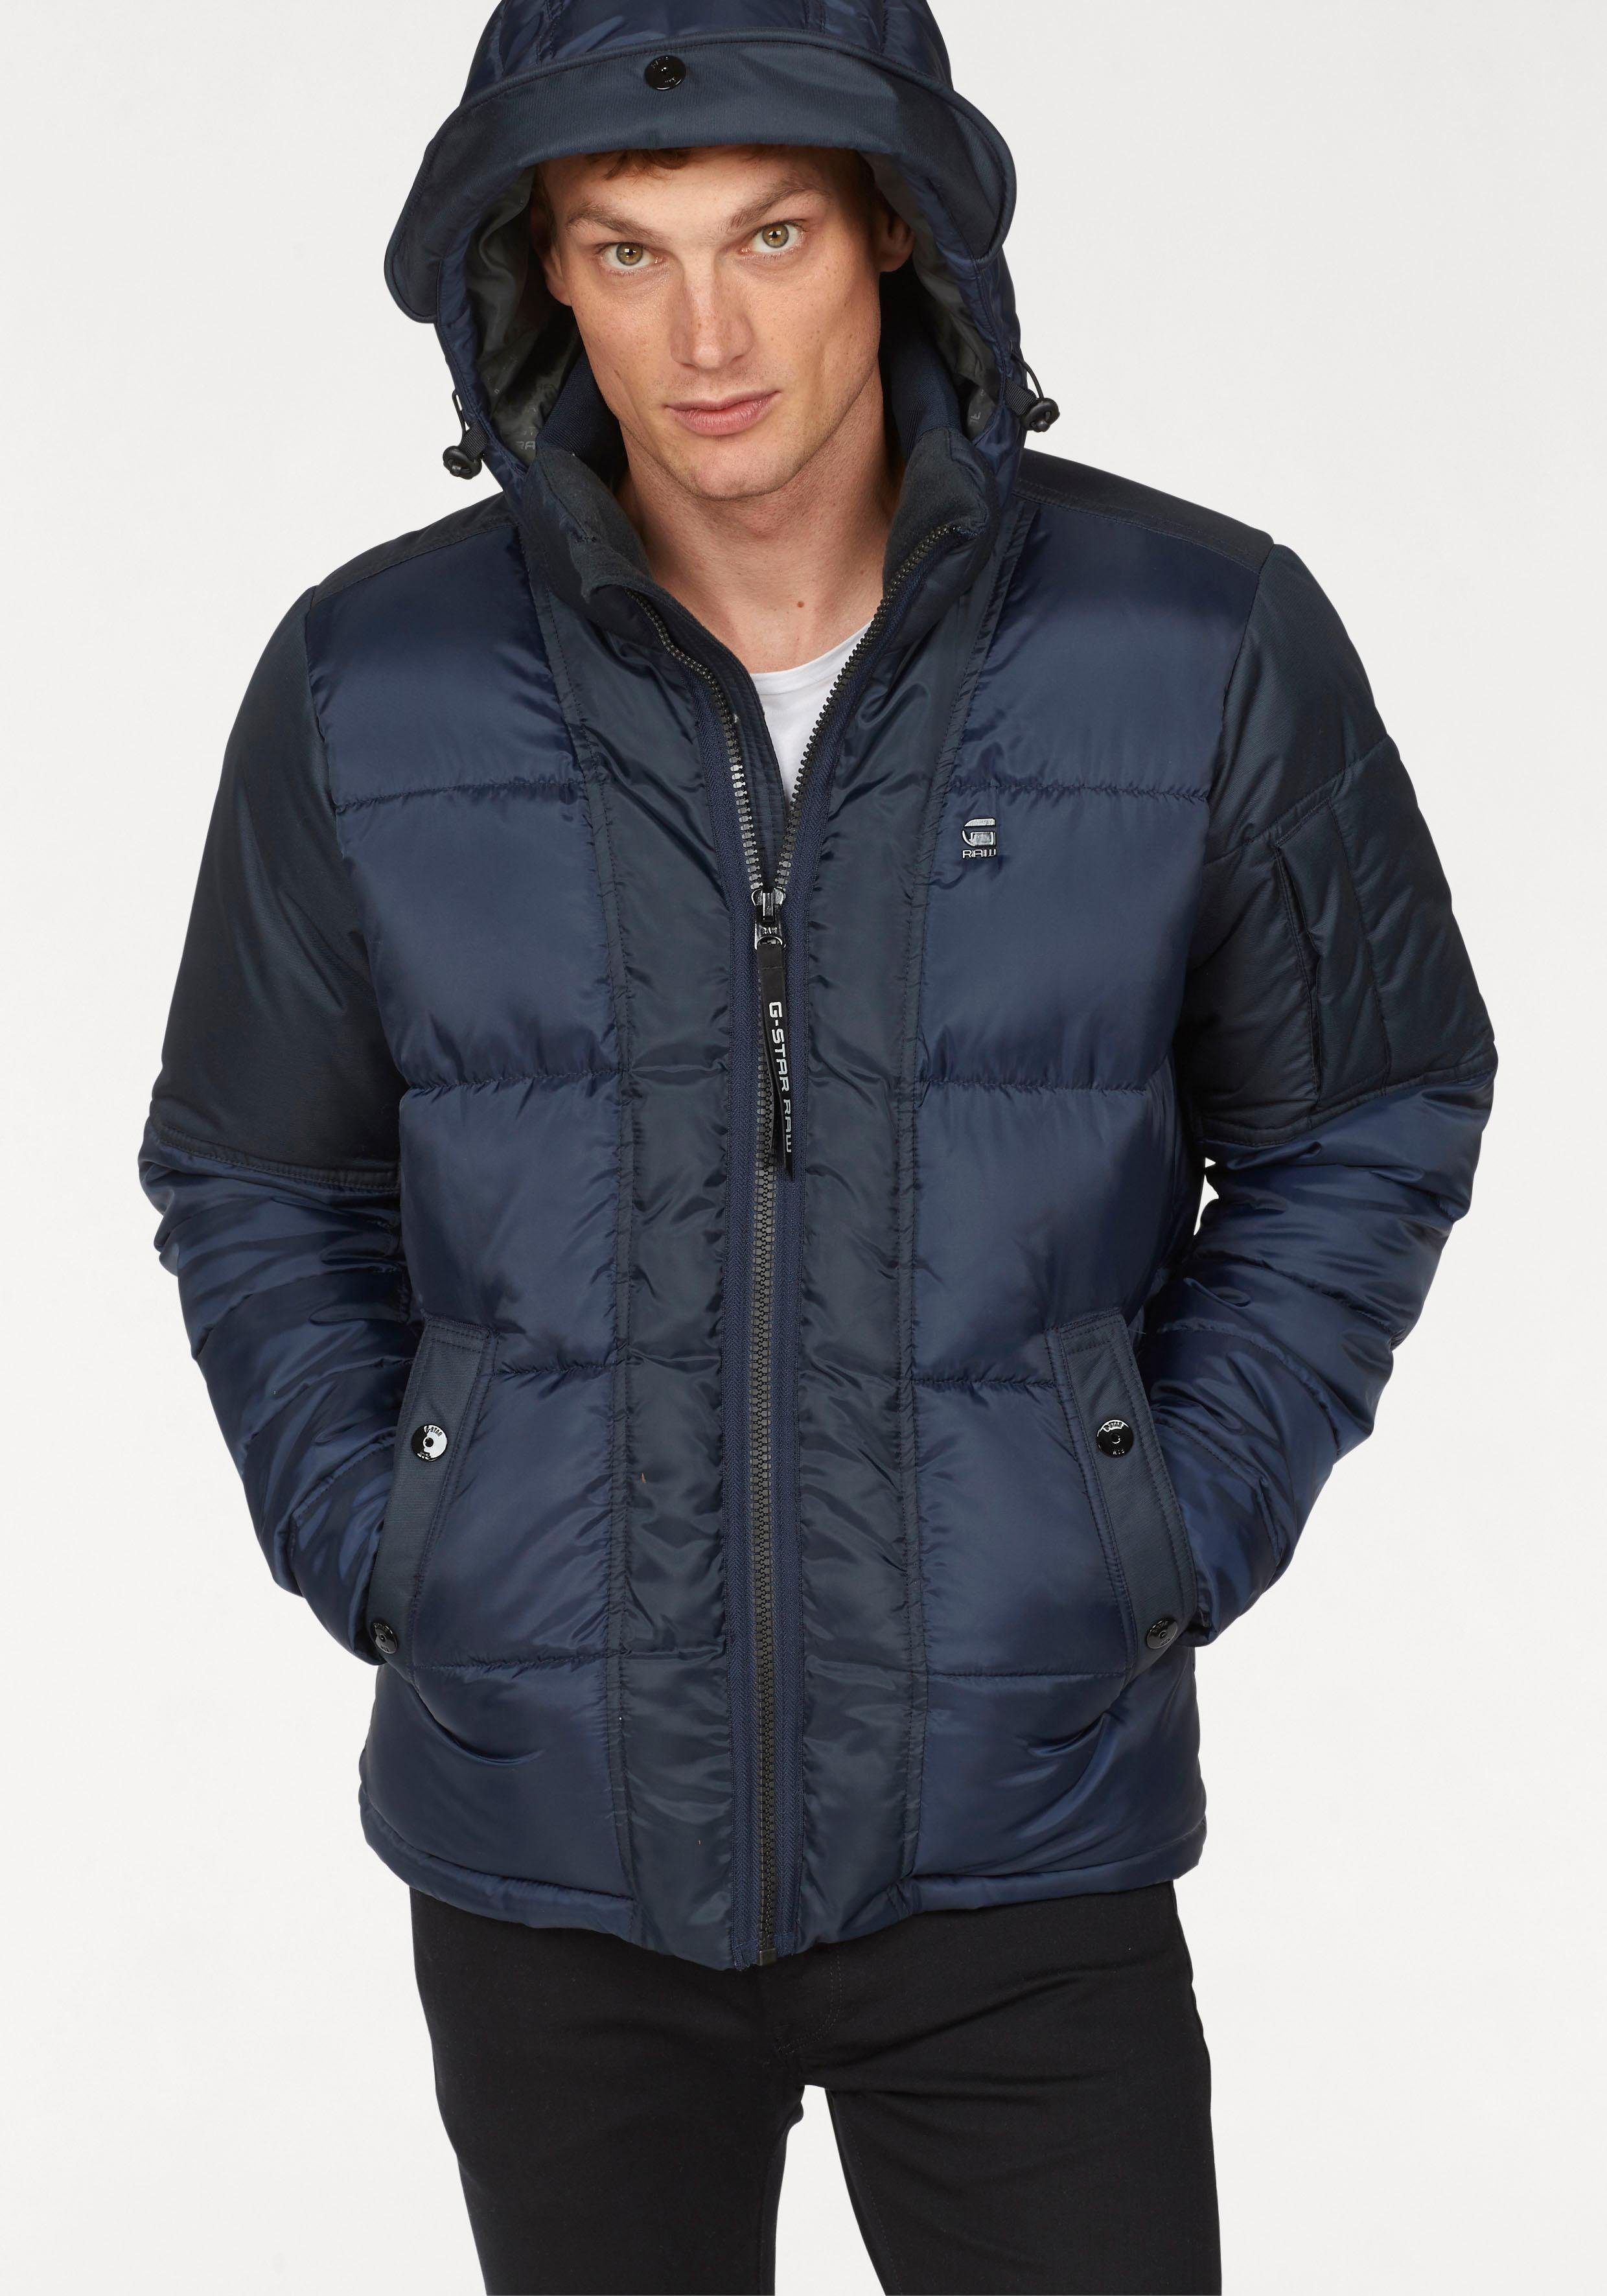 KaufenOtto »whistler Obermaterial Raw Aus Hdd« Recycelten Online Steppjacke G Star Quilted Polyester iXZkOuTP